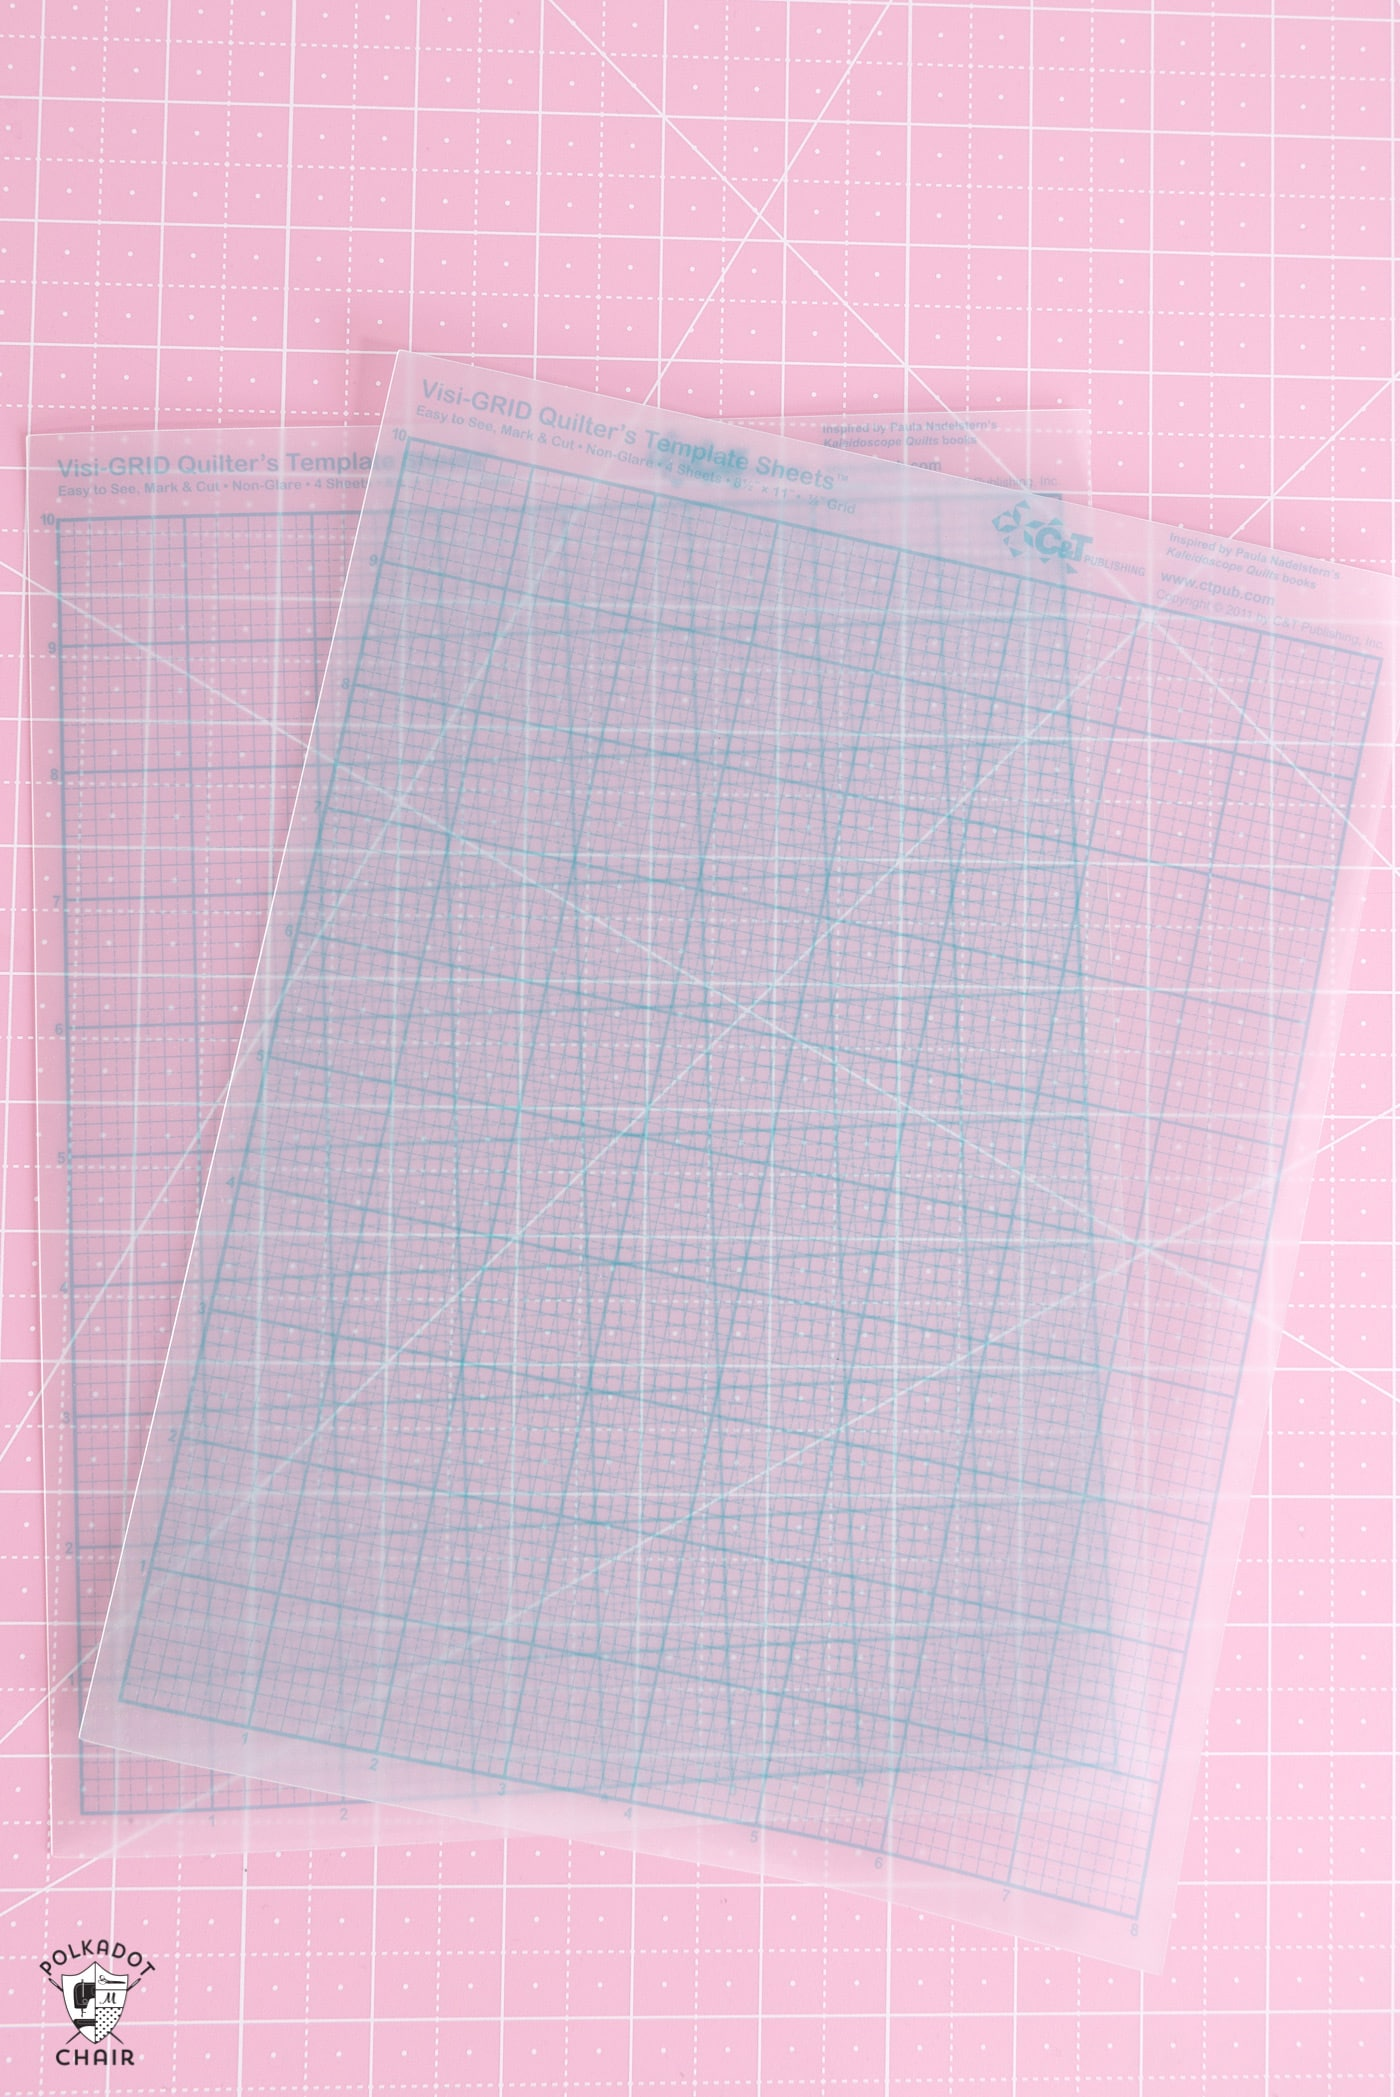 you can also trace the template in the pattern onto a piece of template plastic and cut it out this will be much sturdier than using just a regular piece